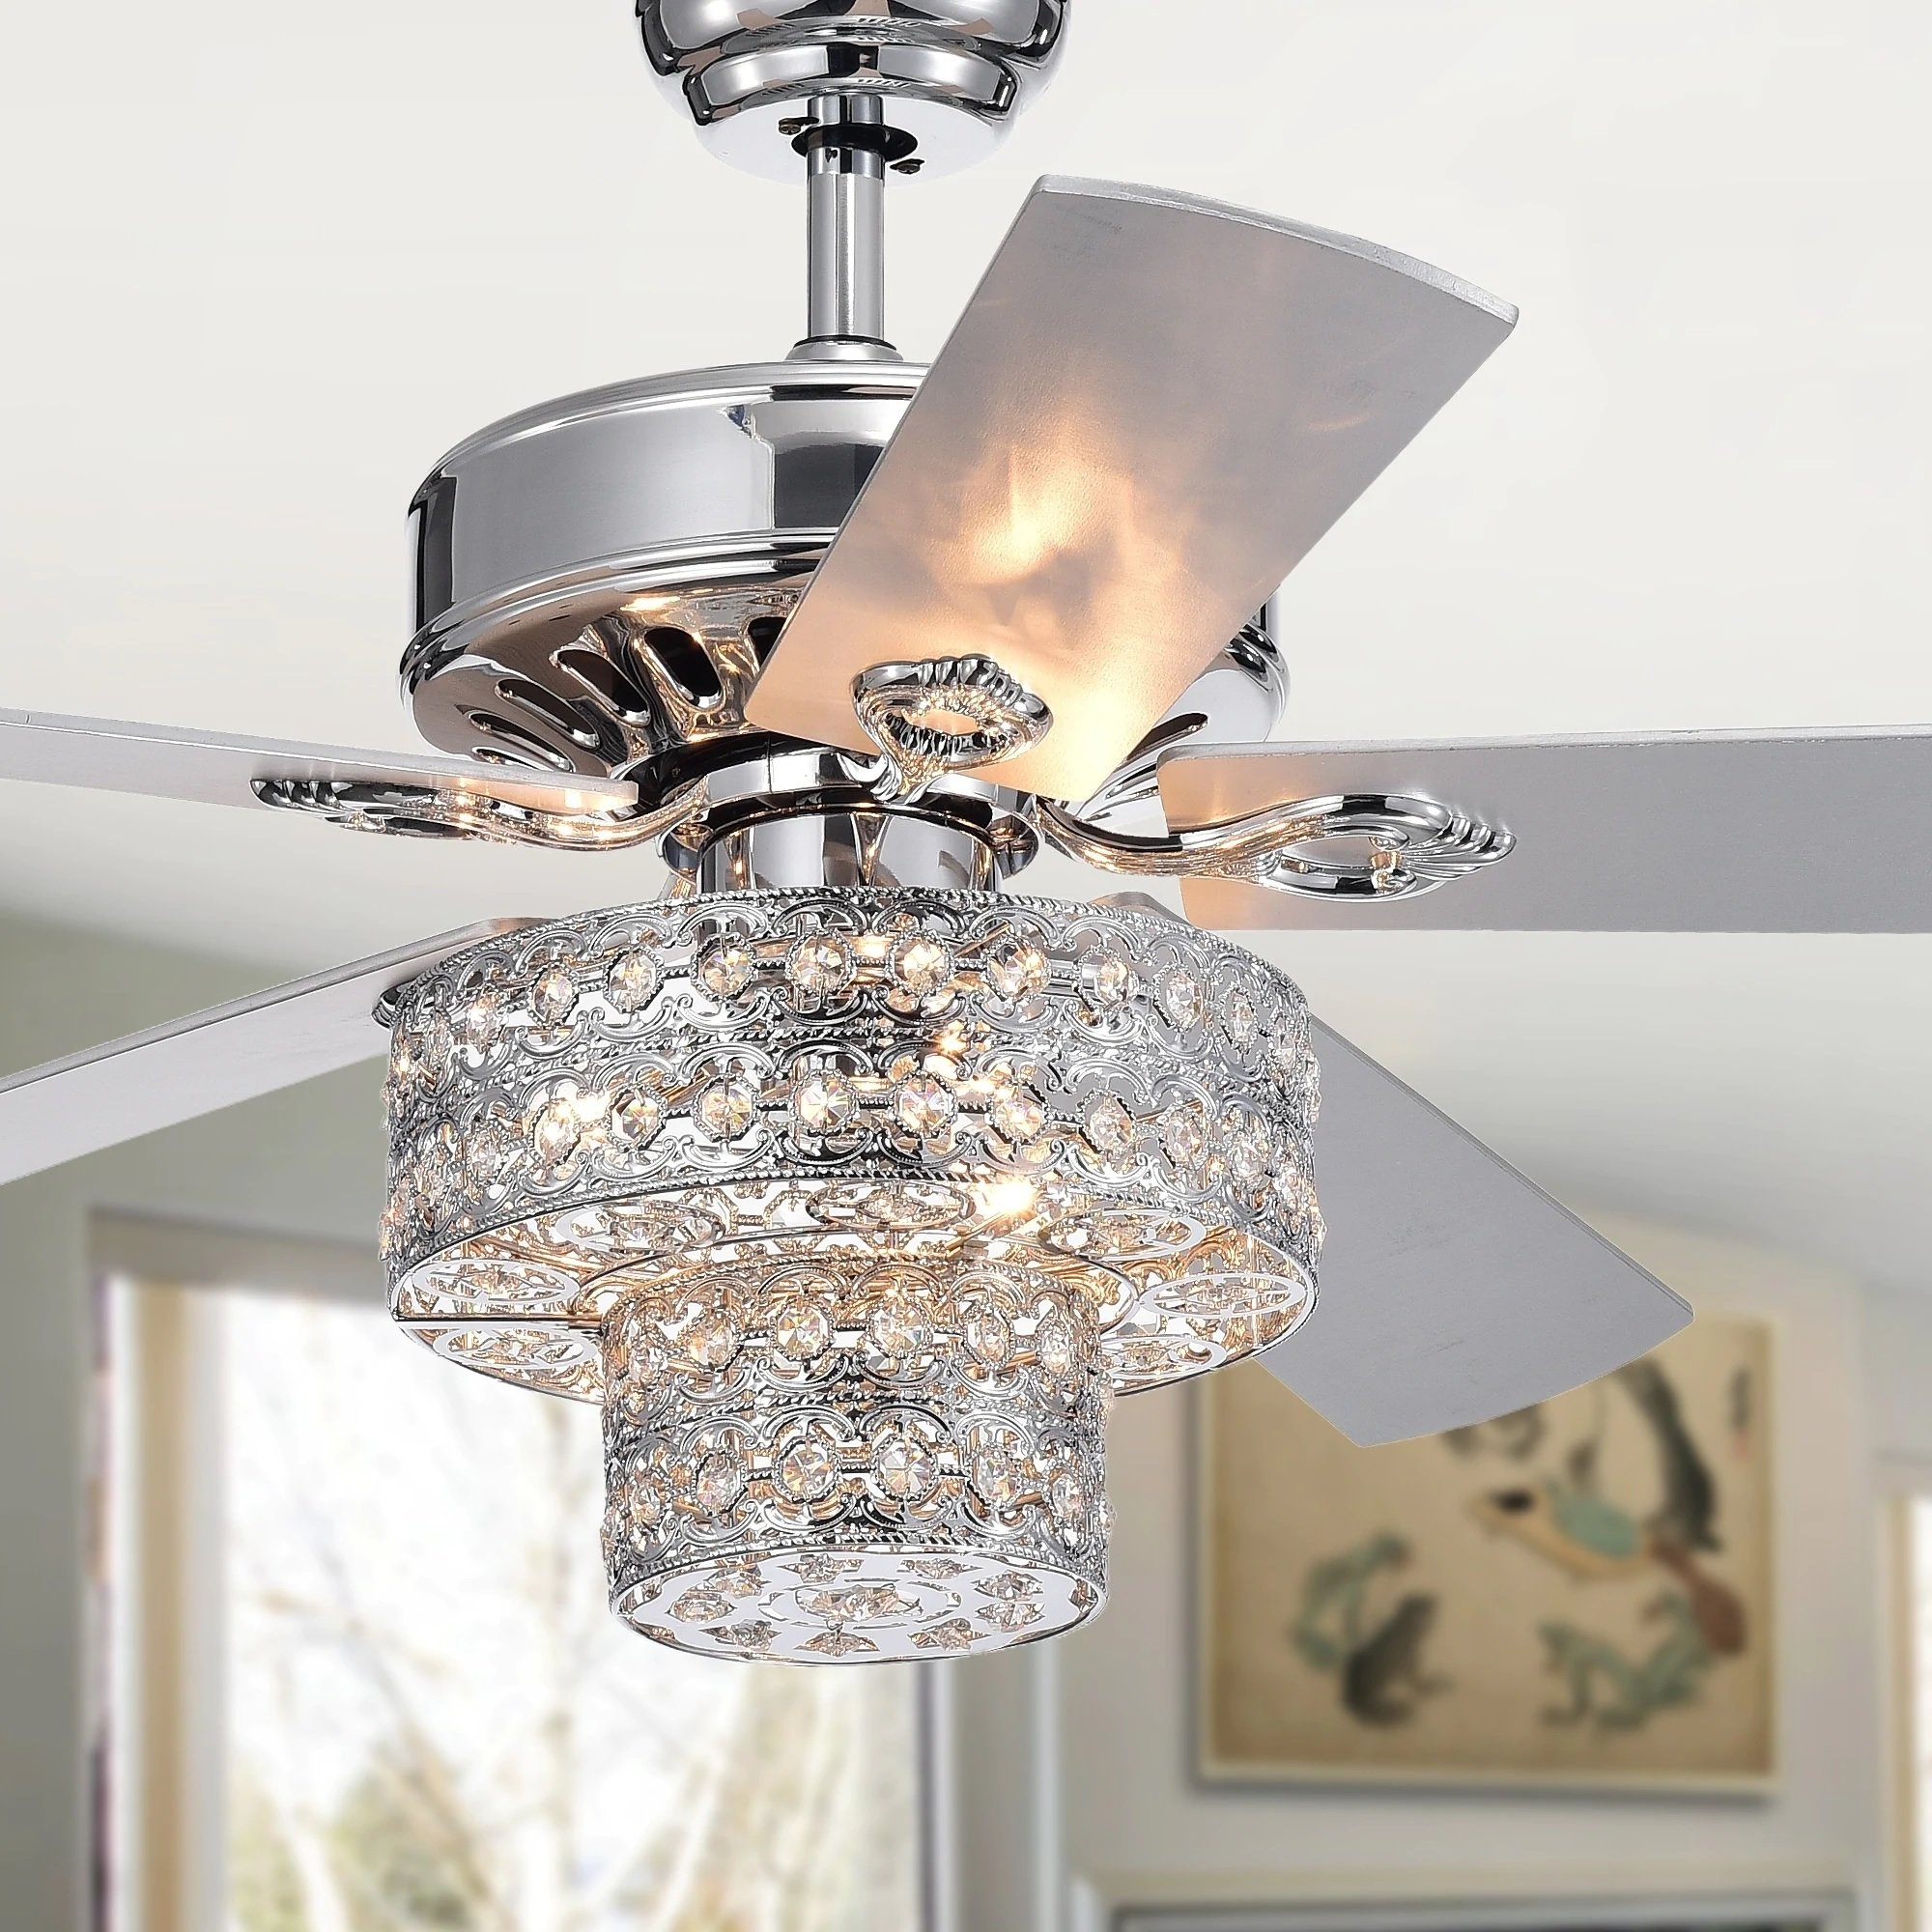 52 Princess Chandelier 5 Blade Ceiling Fan With Remote